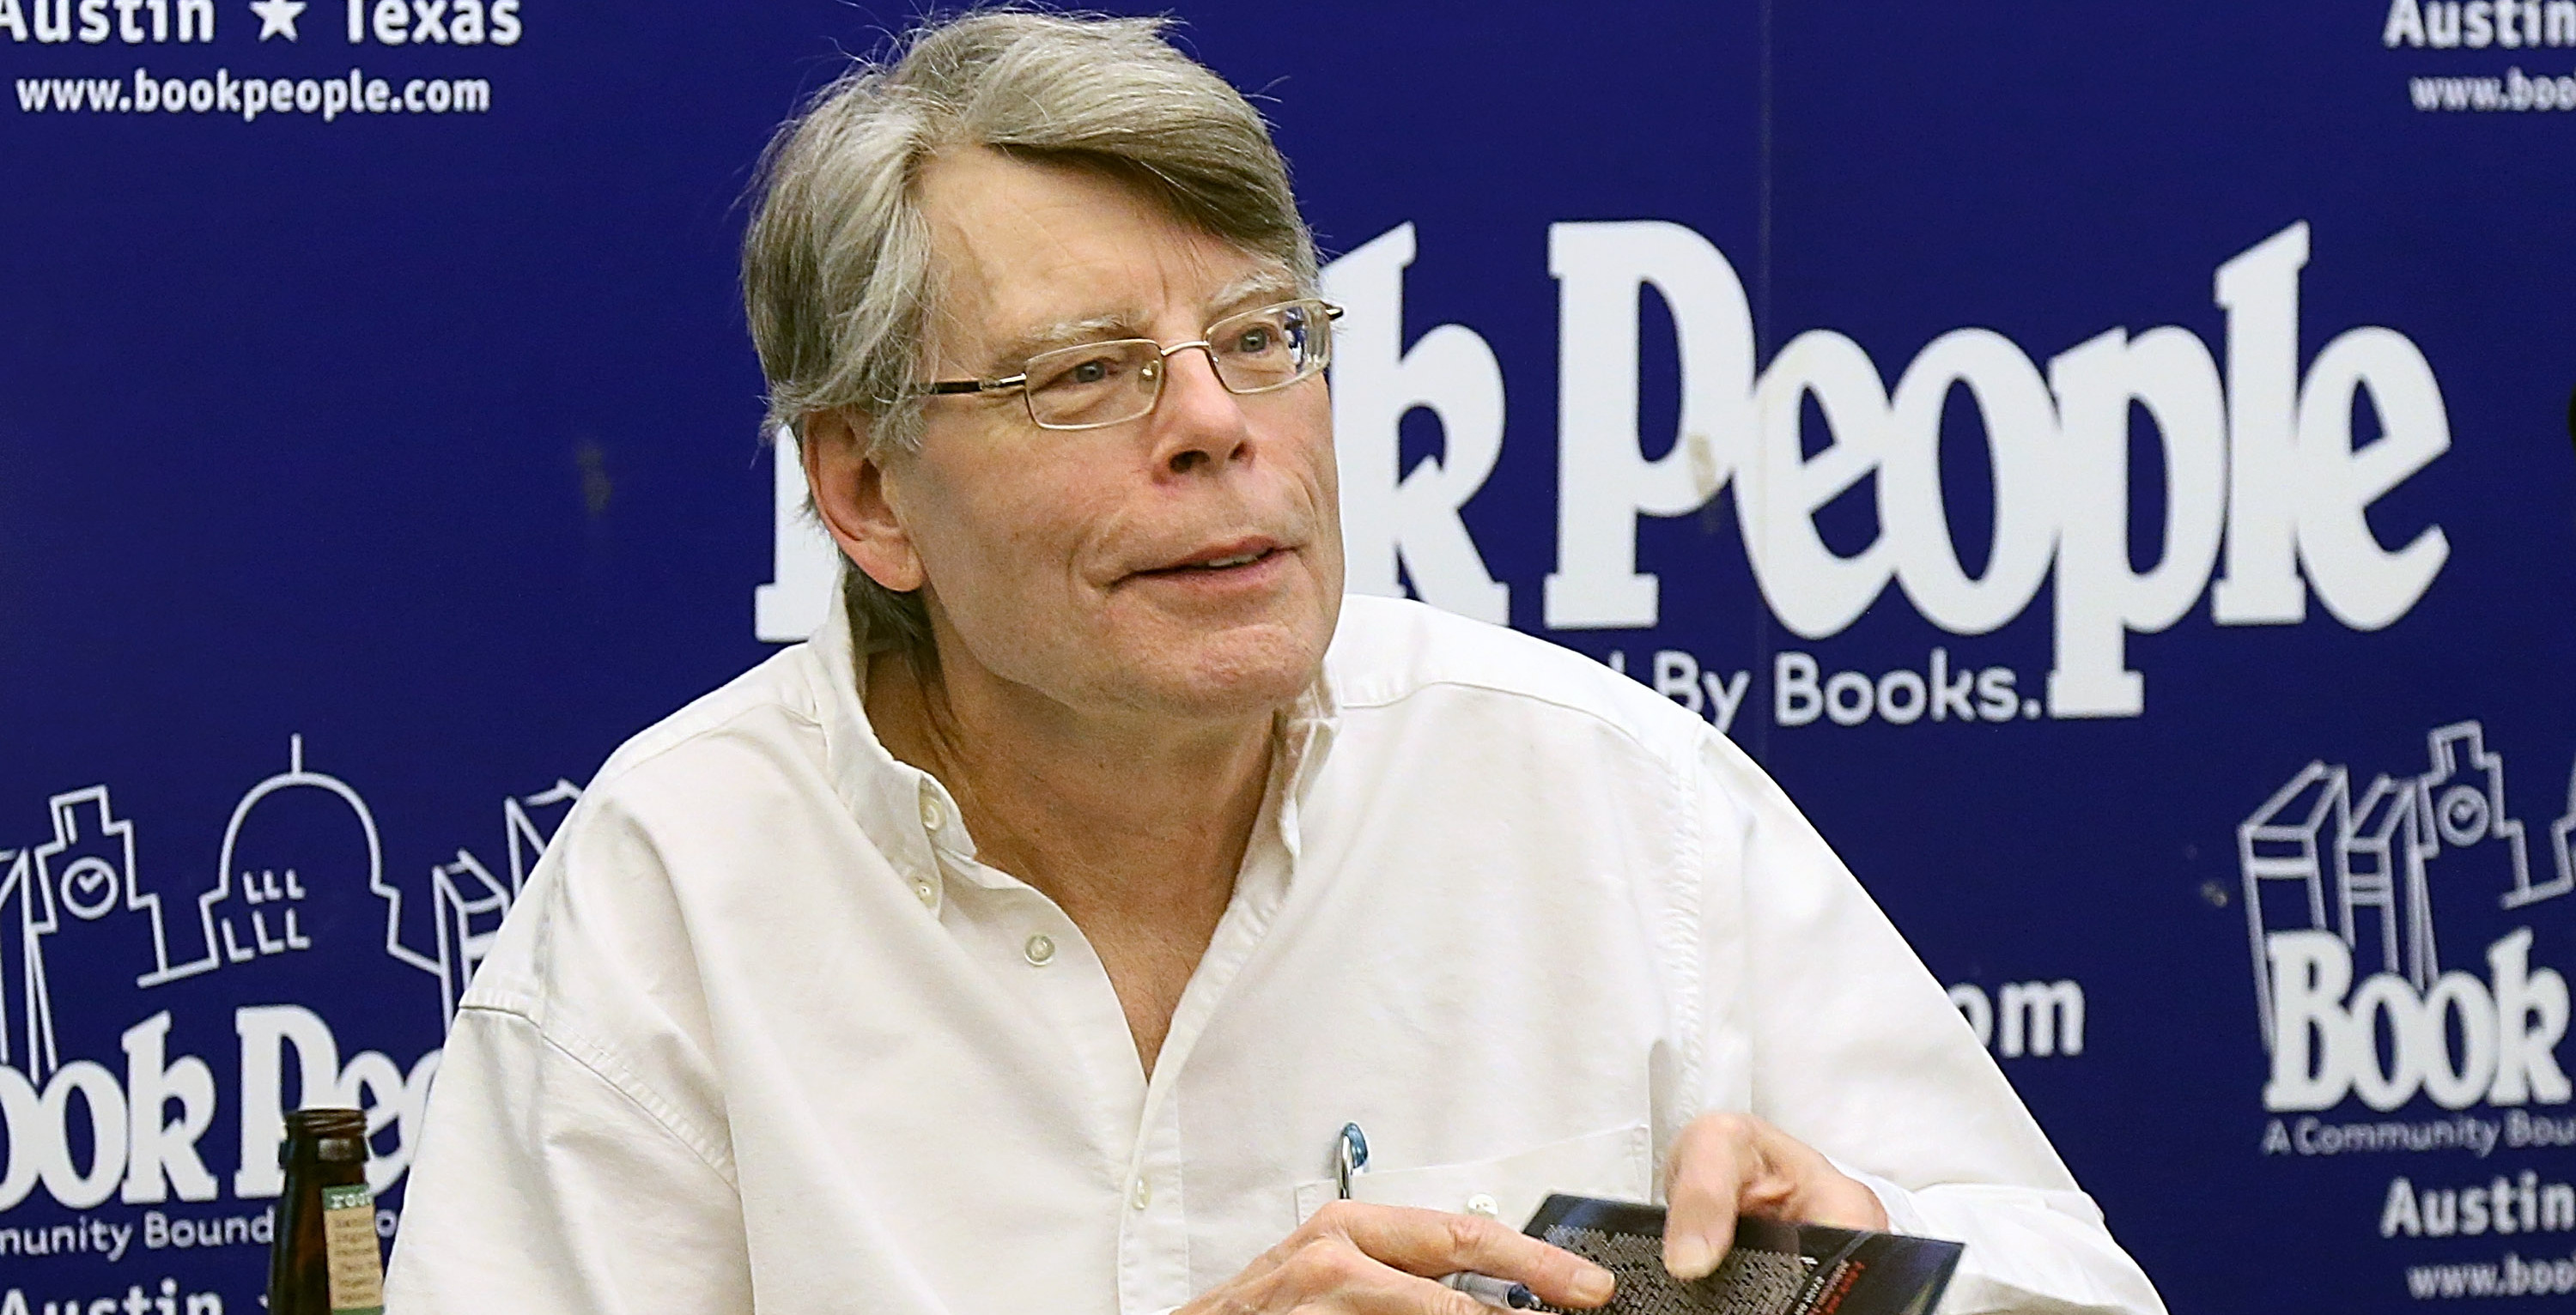 Stephen King's Next Novel Gets March Release Date | Kirkus Reviews